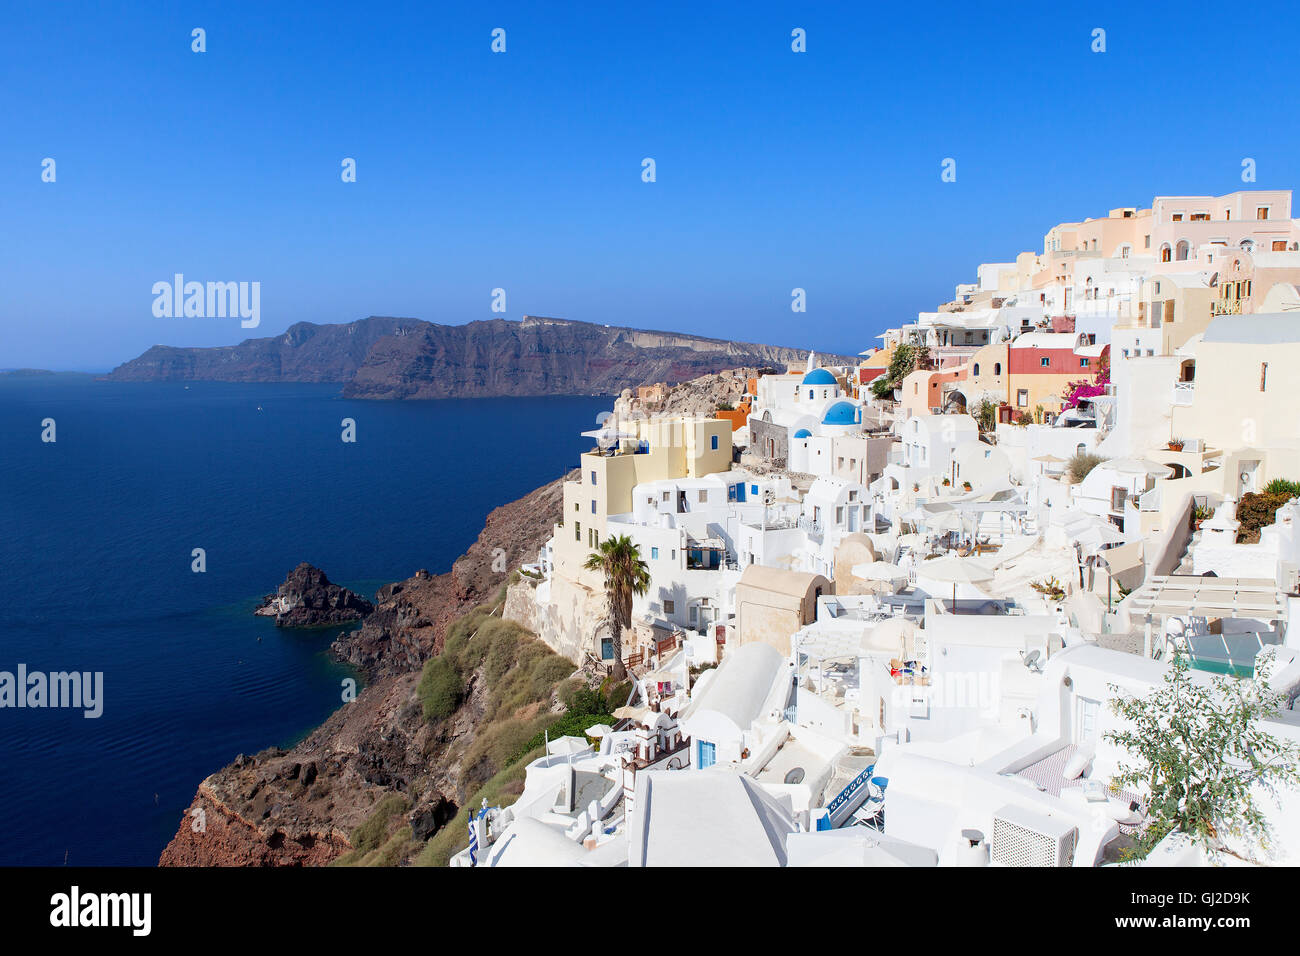 White houses and blue domes of Oia, Santorini. - Stock Image